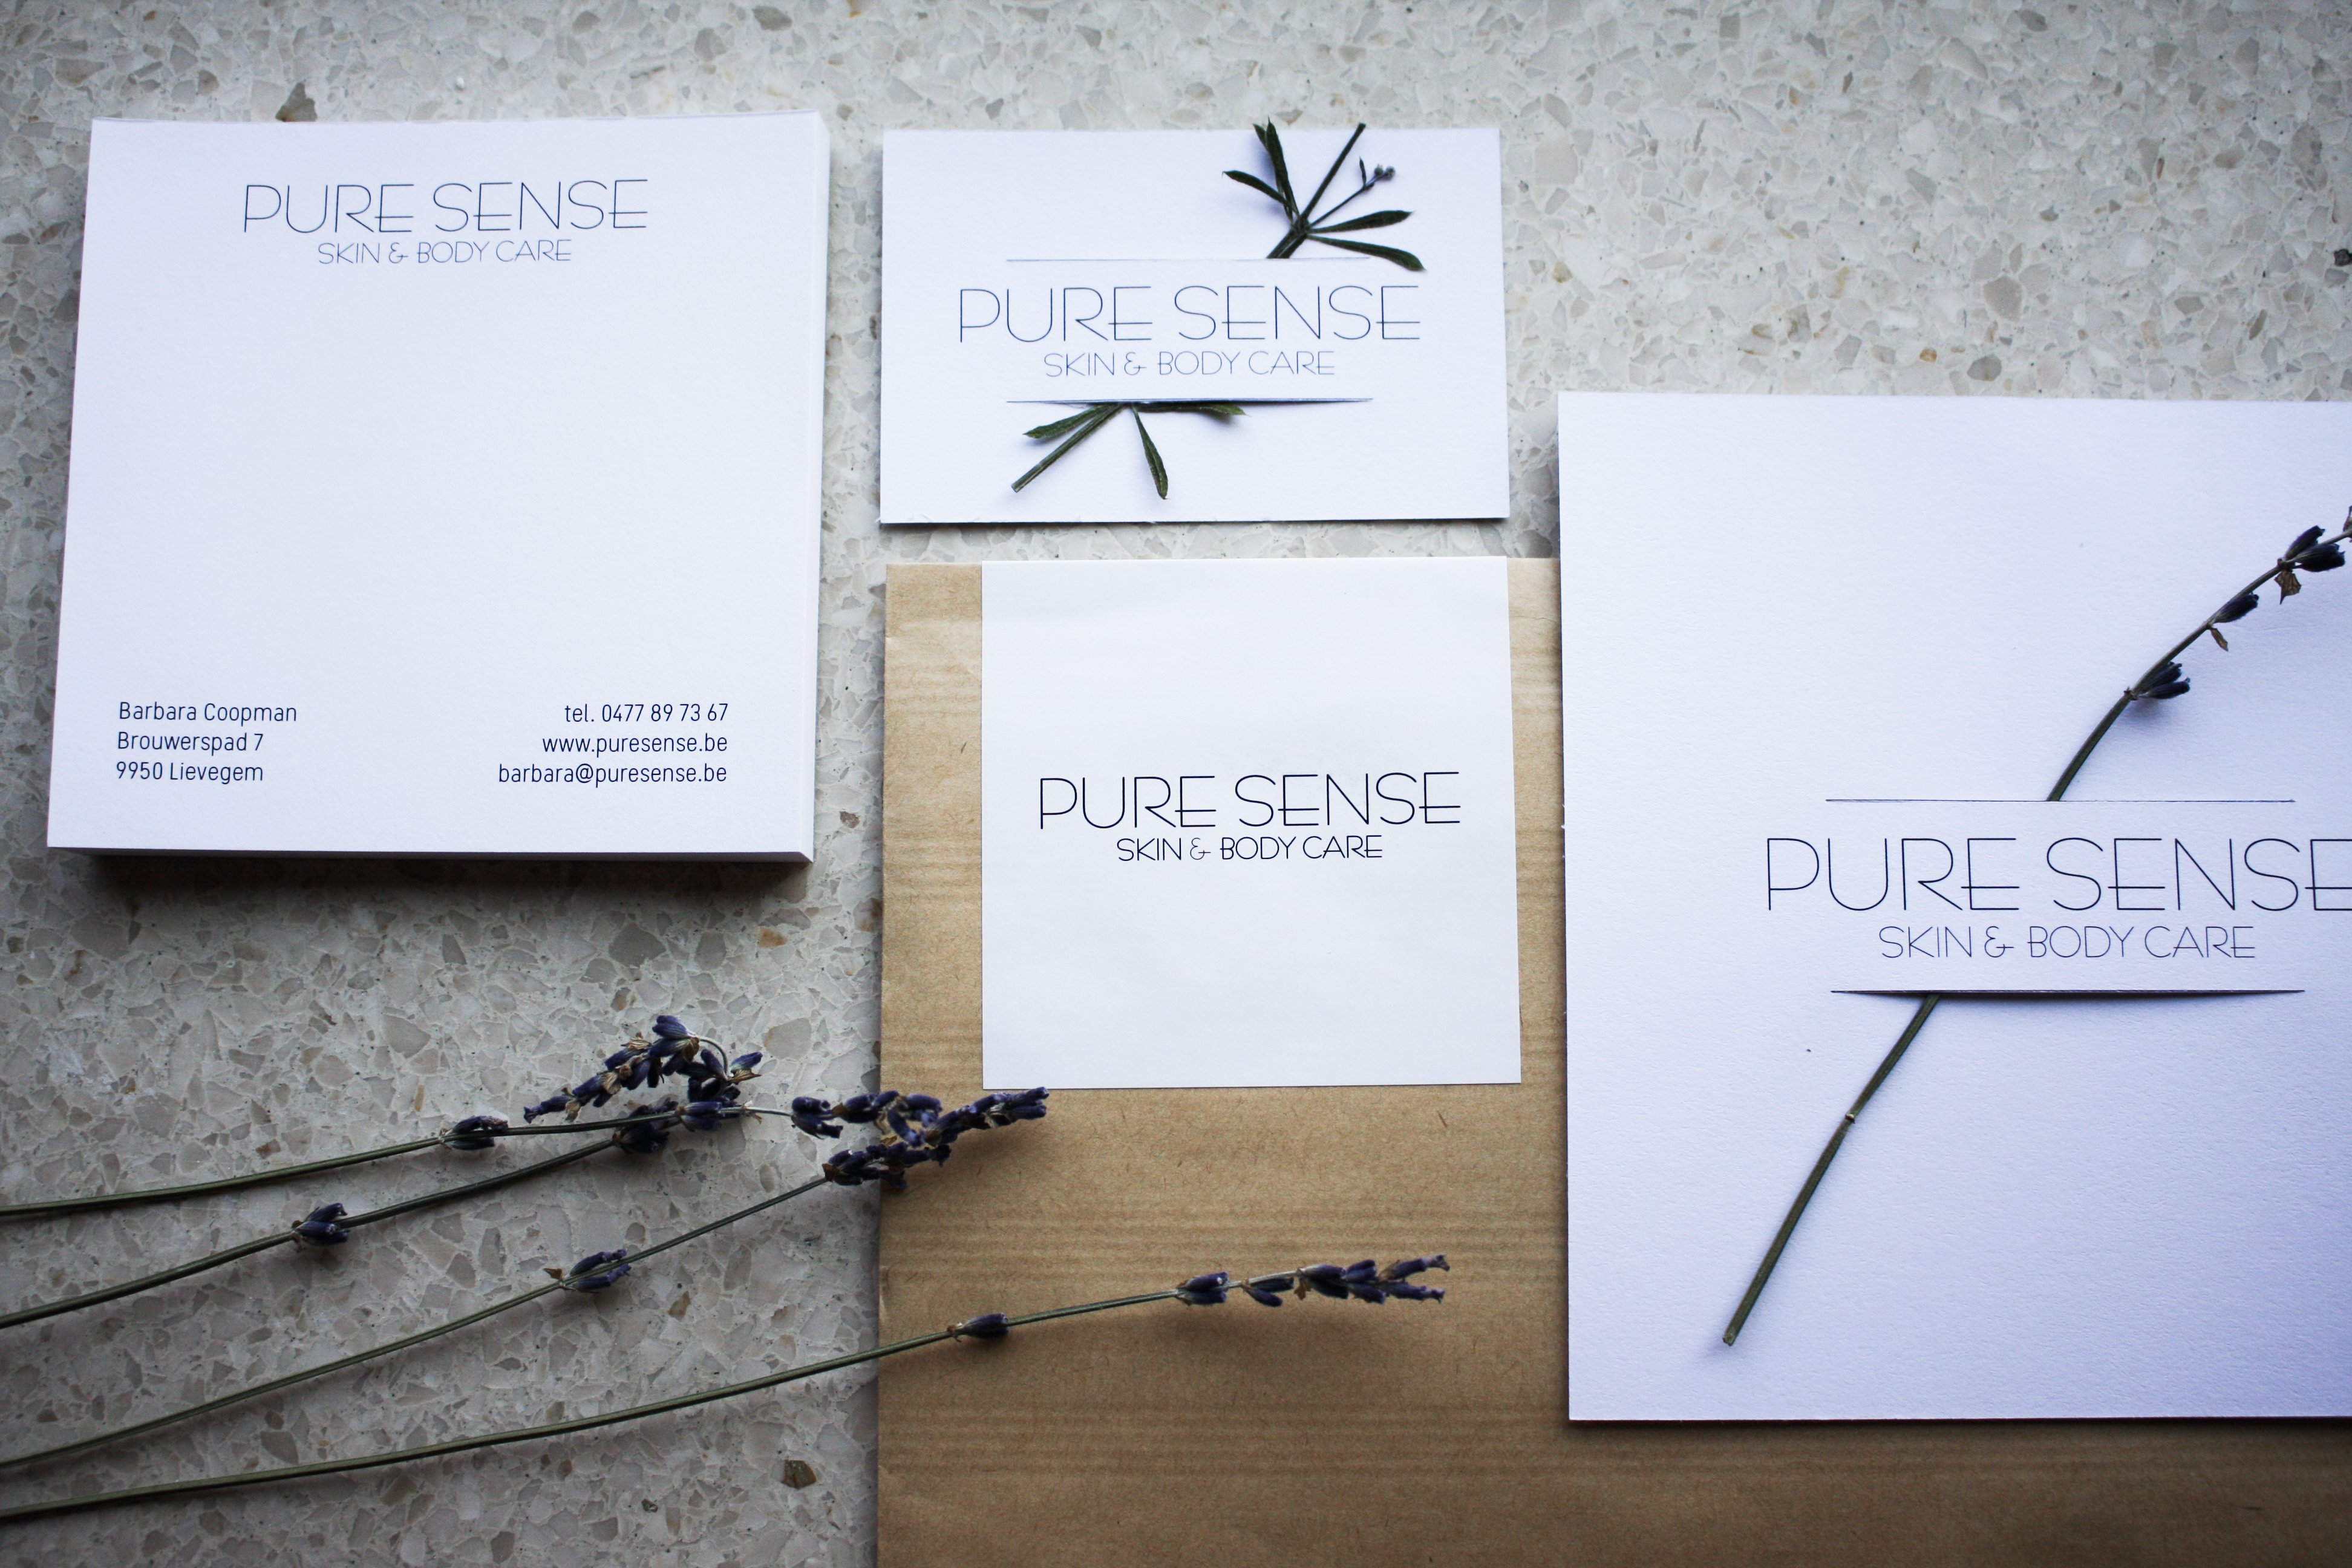 Pure Sense - Skin & Body Care / photo by Anders Design